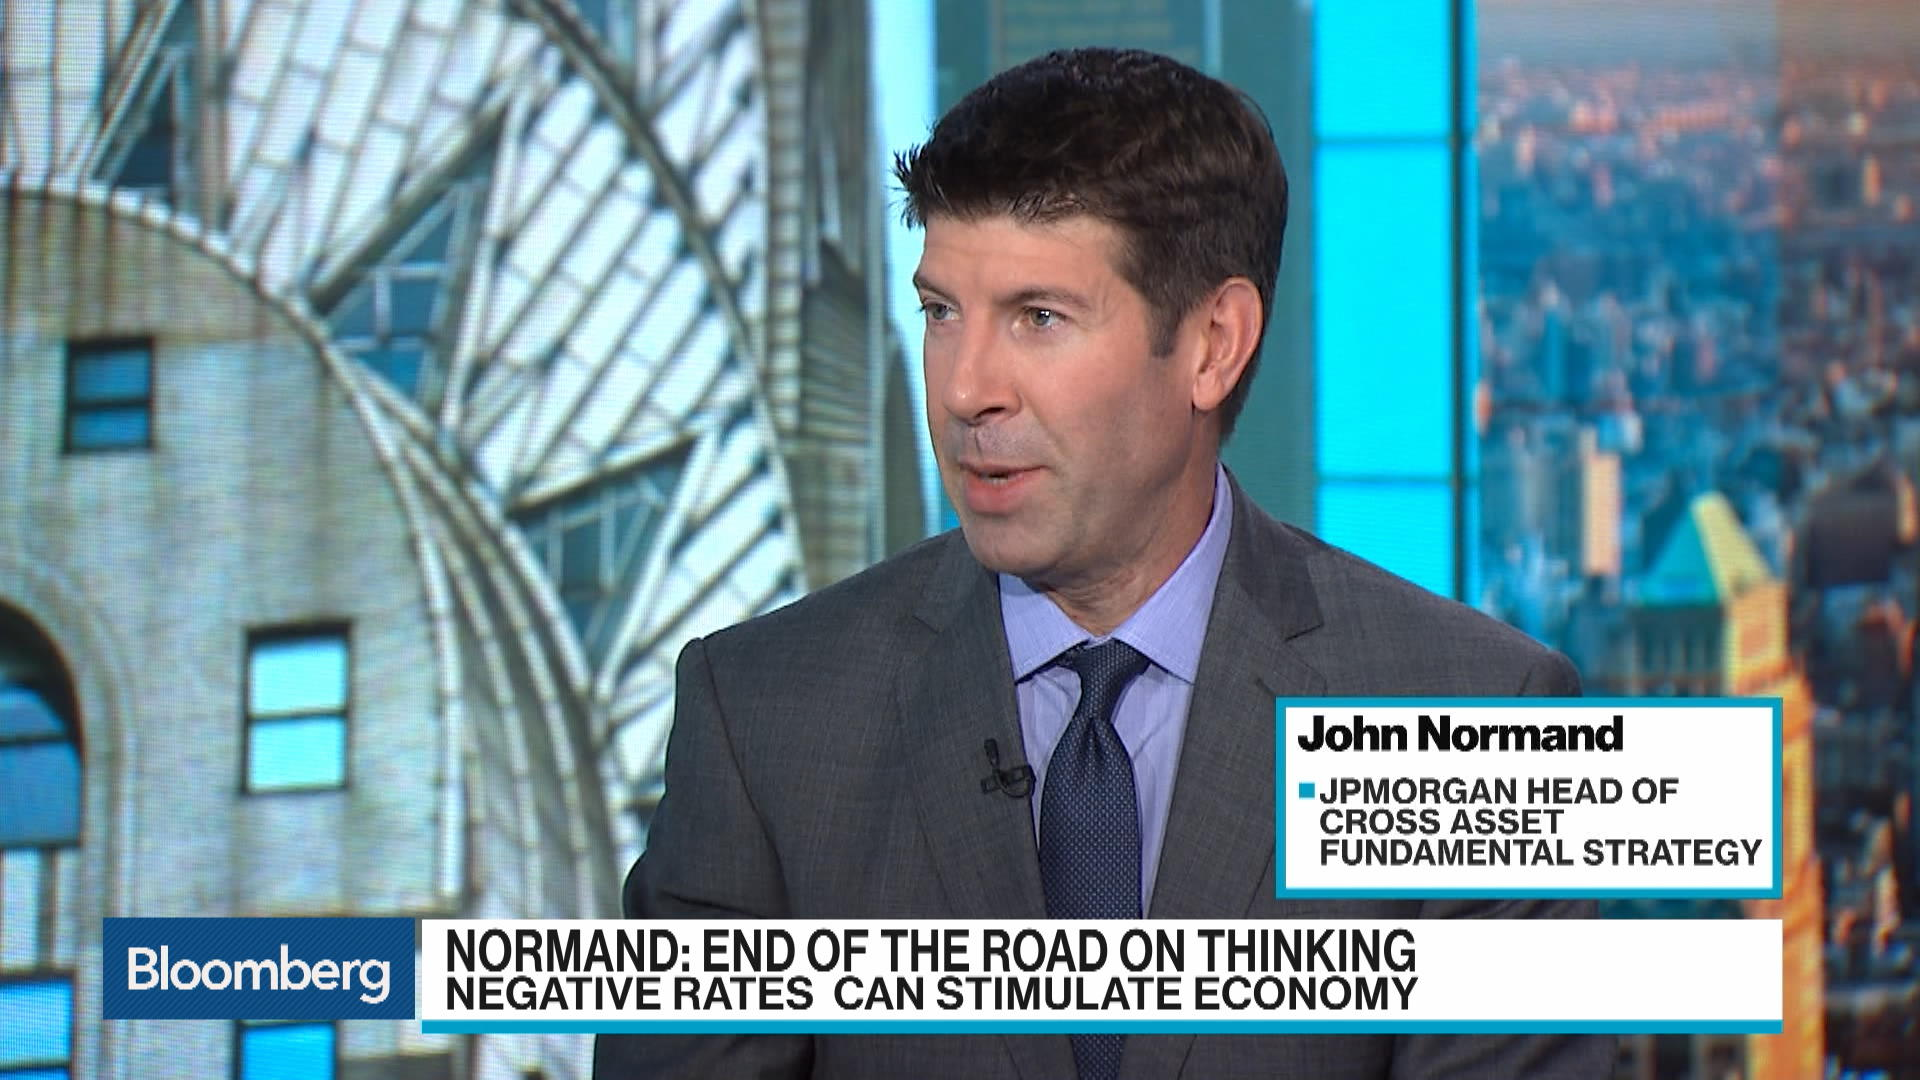 JPMorgan's John Normand Sees a Change in Thinking on Negative Rates